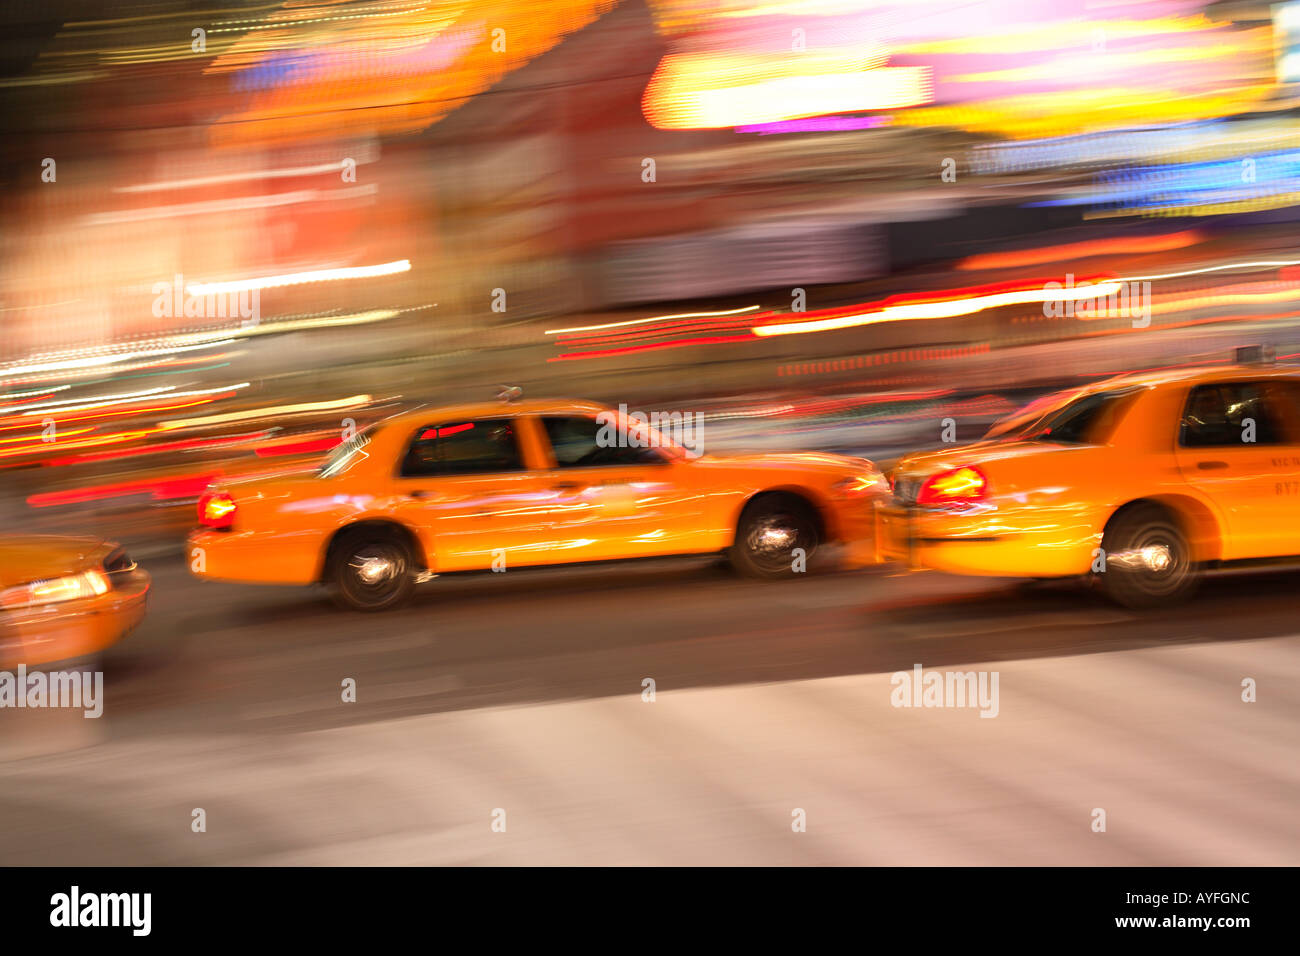 Taxi Cabs in Times Square, New York City - Stock Image